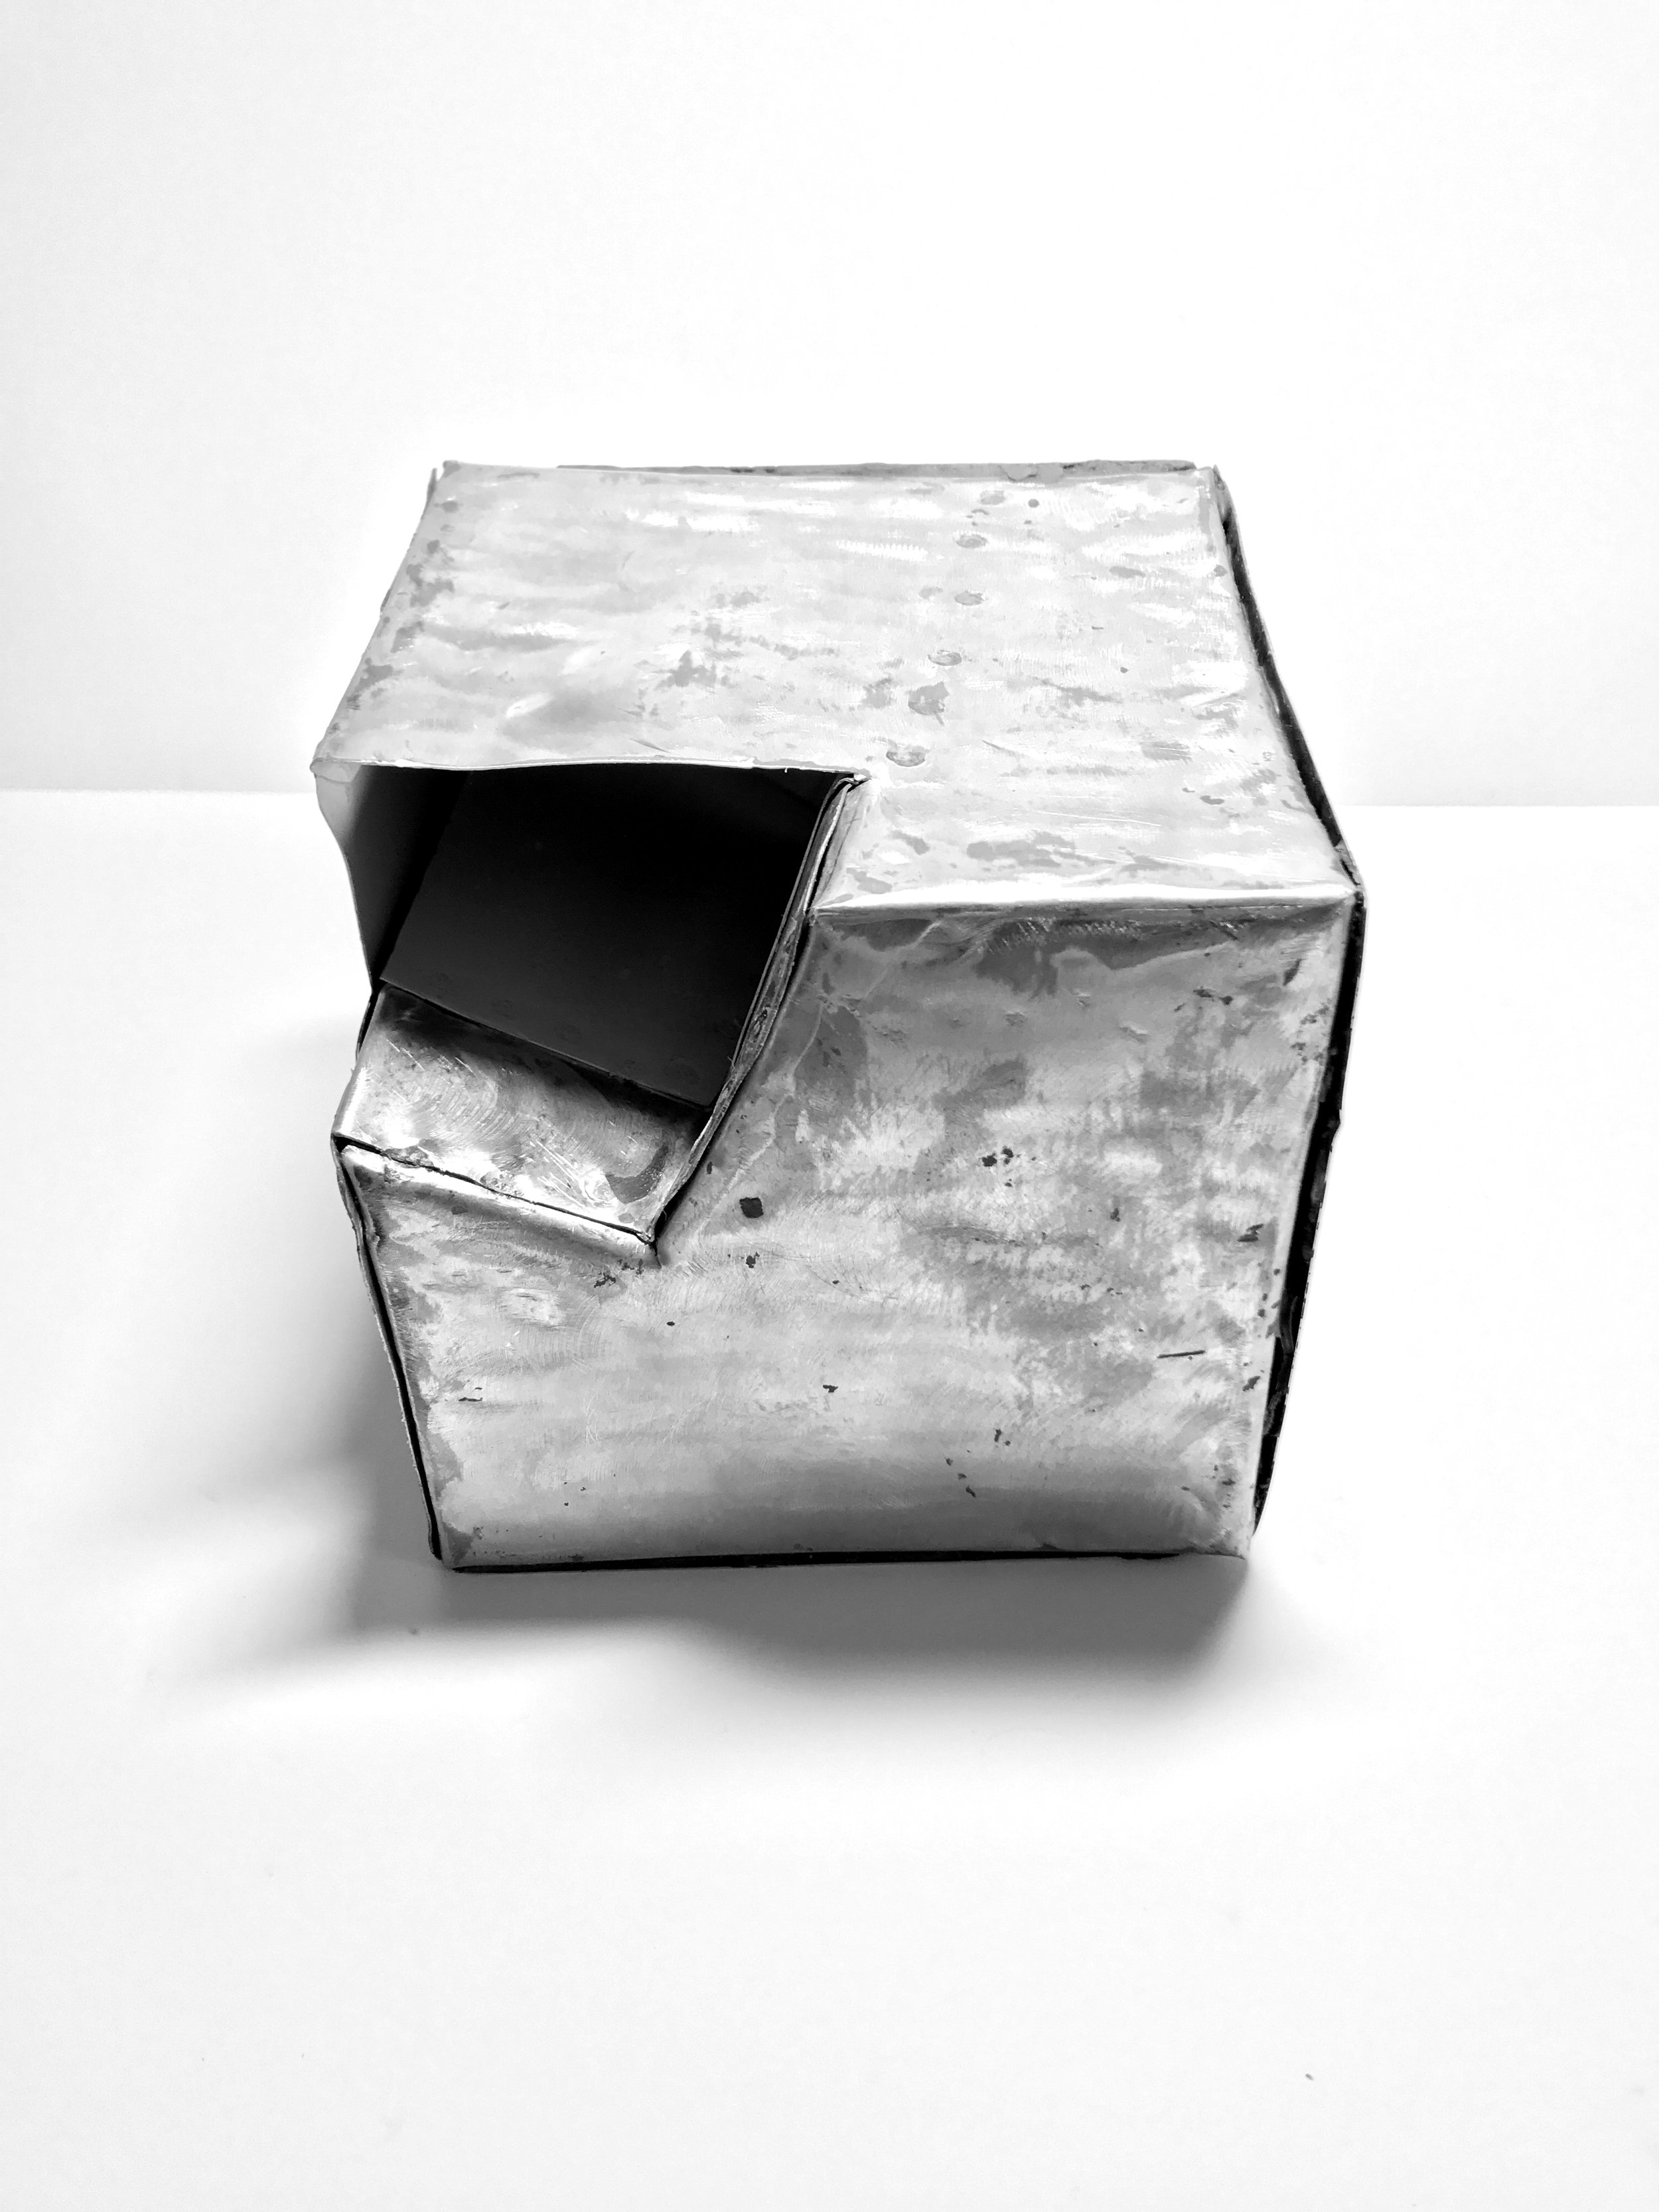 """CUTTING PLANES Cut planes perpendicularly on a slanted axis. Overlap cuts from different sides to create reliefs in the cube.   SEAMS Used only lap seams to not complicate the design which already draws attention to the reliefs made by the intersecting cuts.   COLOR  White used on the """"interior"""" of the object to draw the viewer in."""